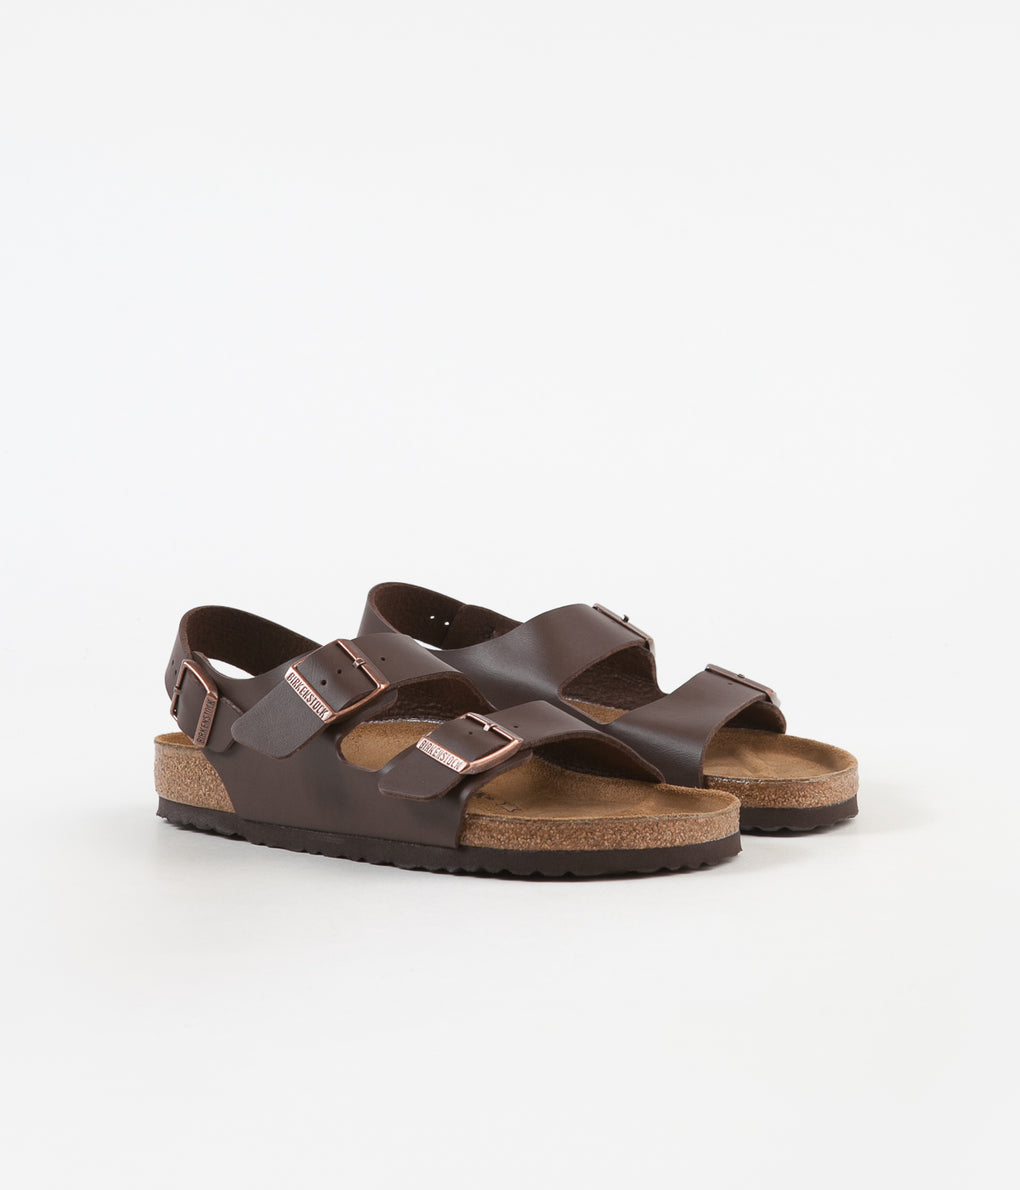 Birkenstock Milano Sandals - Dark Brown